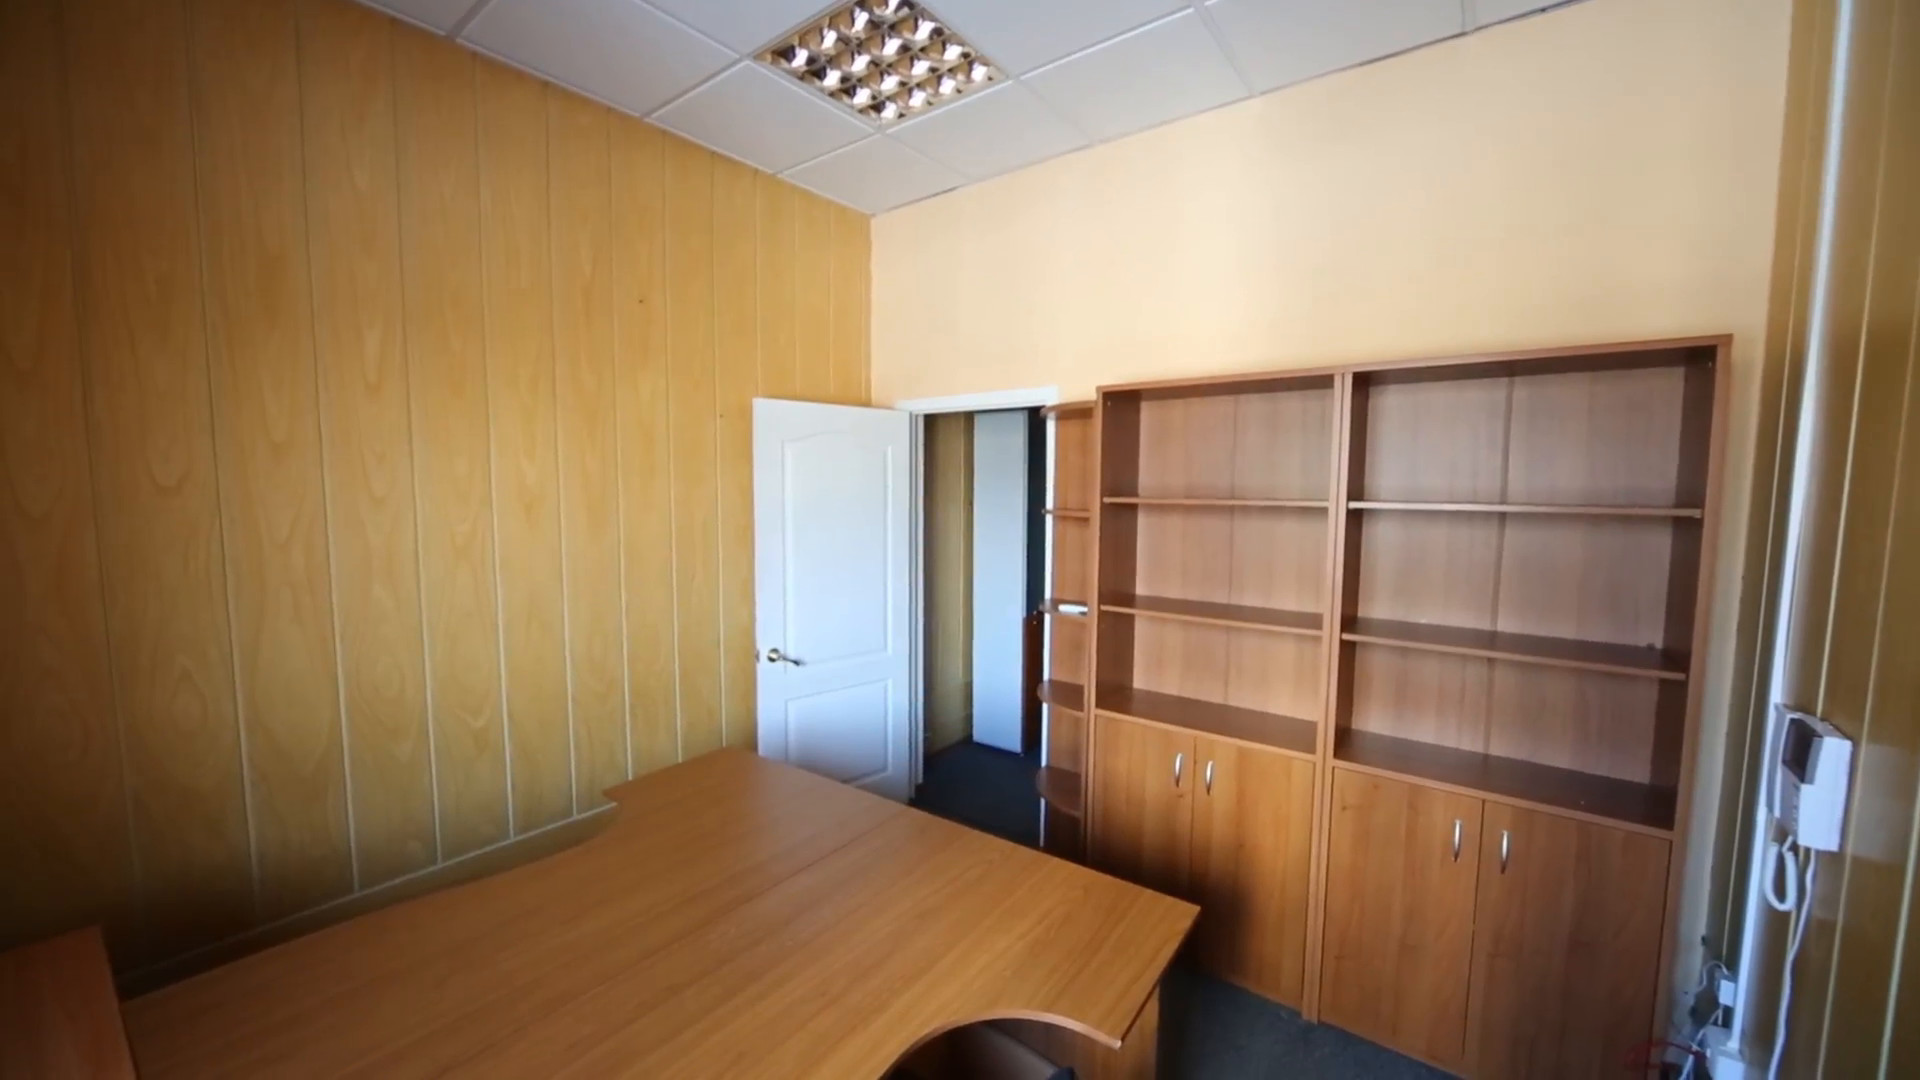 A small office room with a work desk and empty cabinets Stock Video Footage  – VideoBlocks